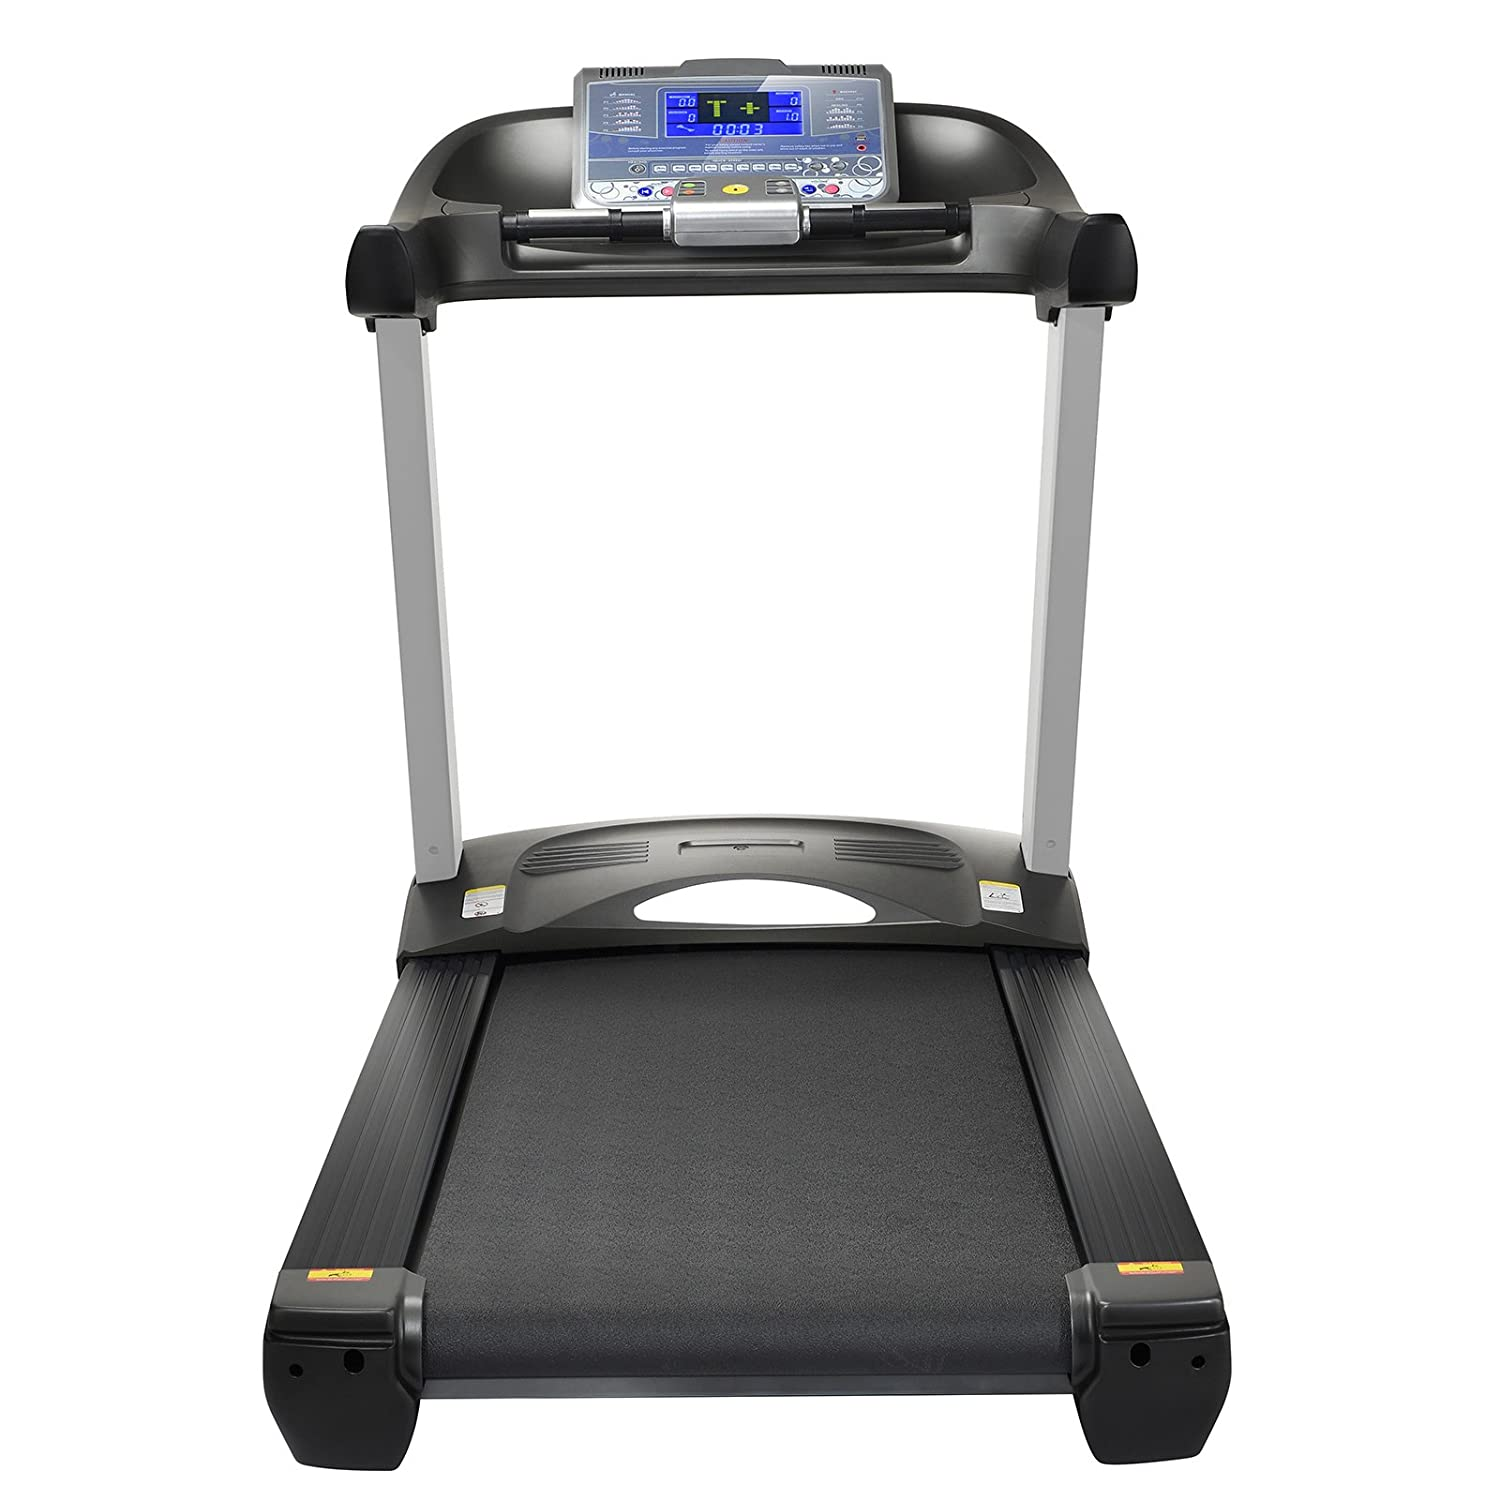 Sportstech F65 professional treadmill with 7 inch display